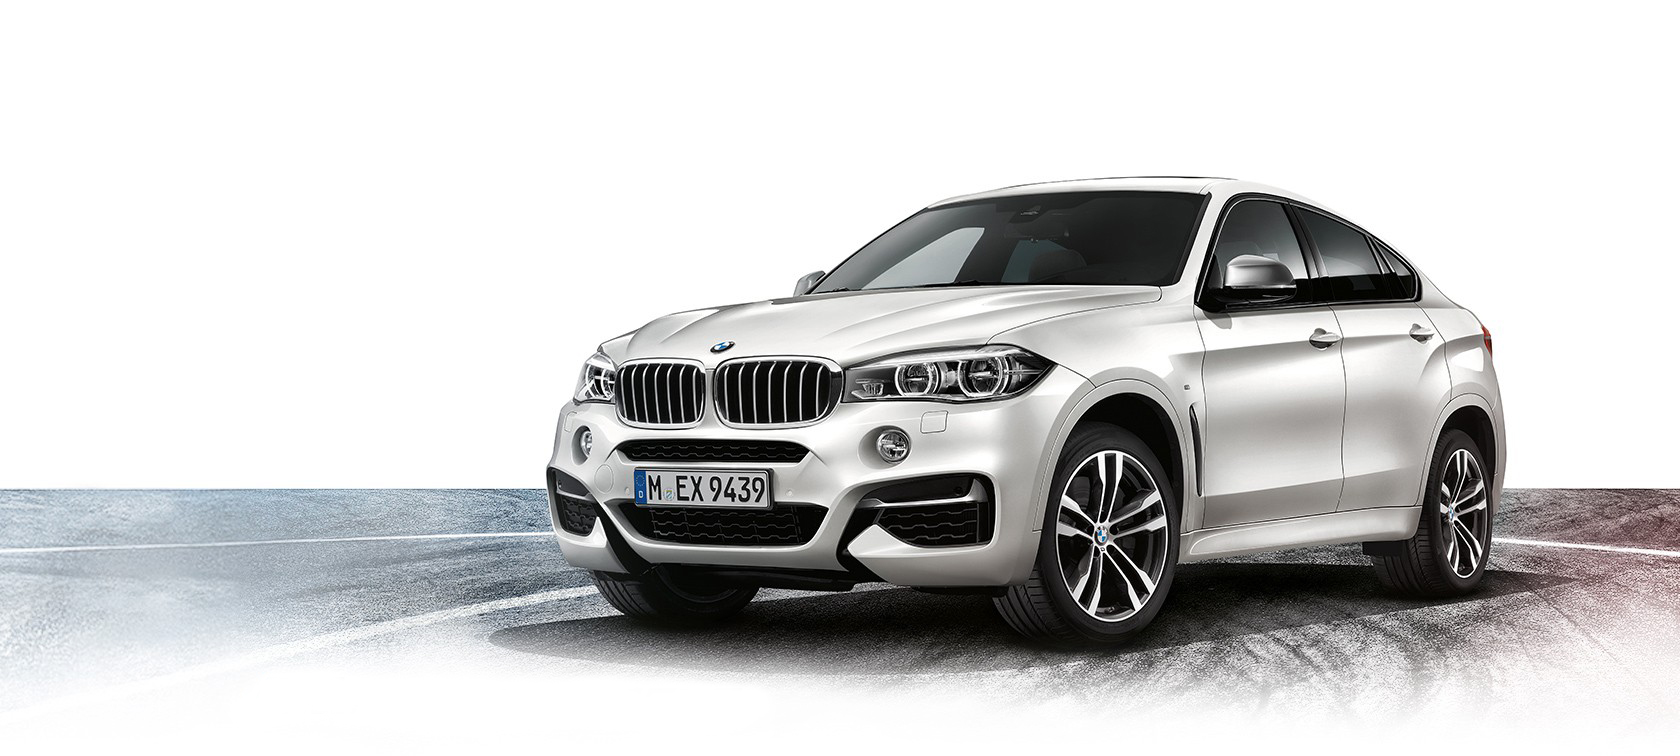 bmw x6 m performance bmw south africa. Black Bedroom Furniture Sets. Home Design Ideas